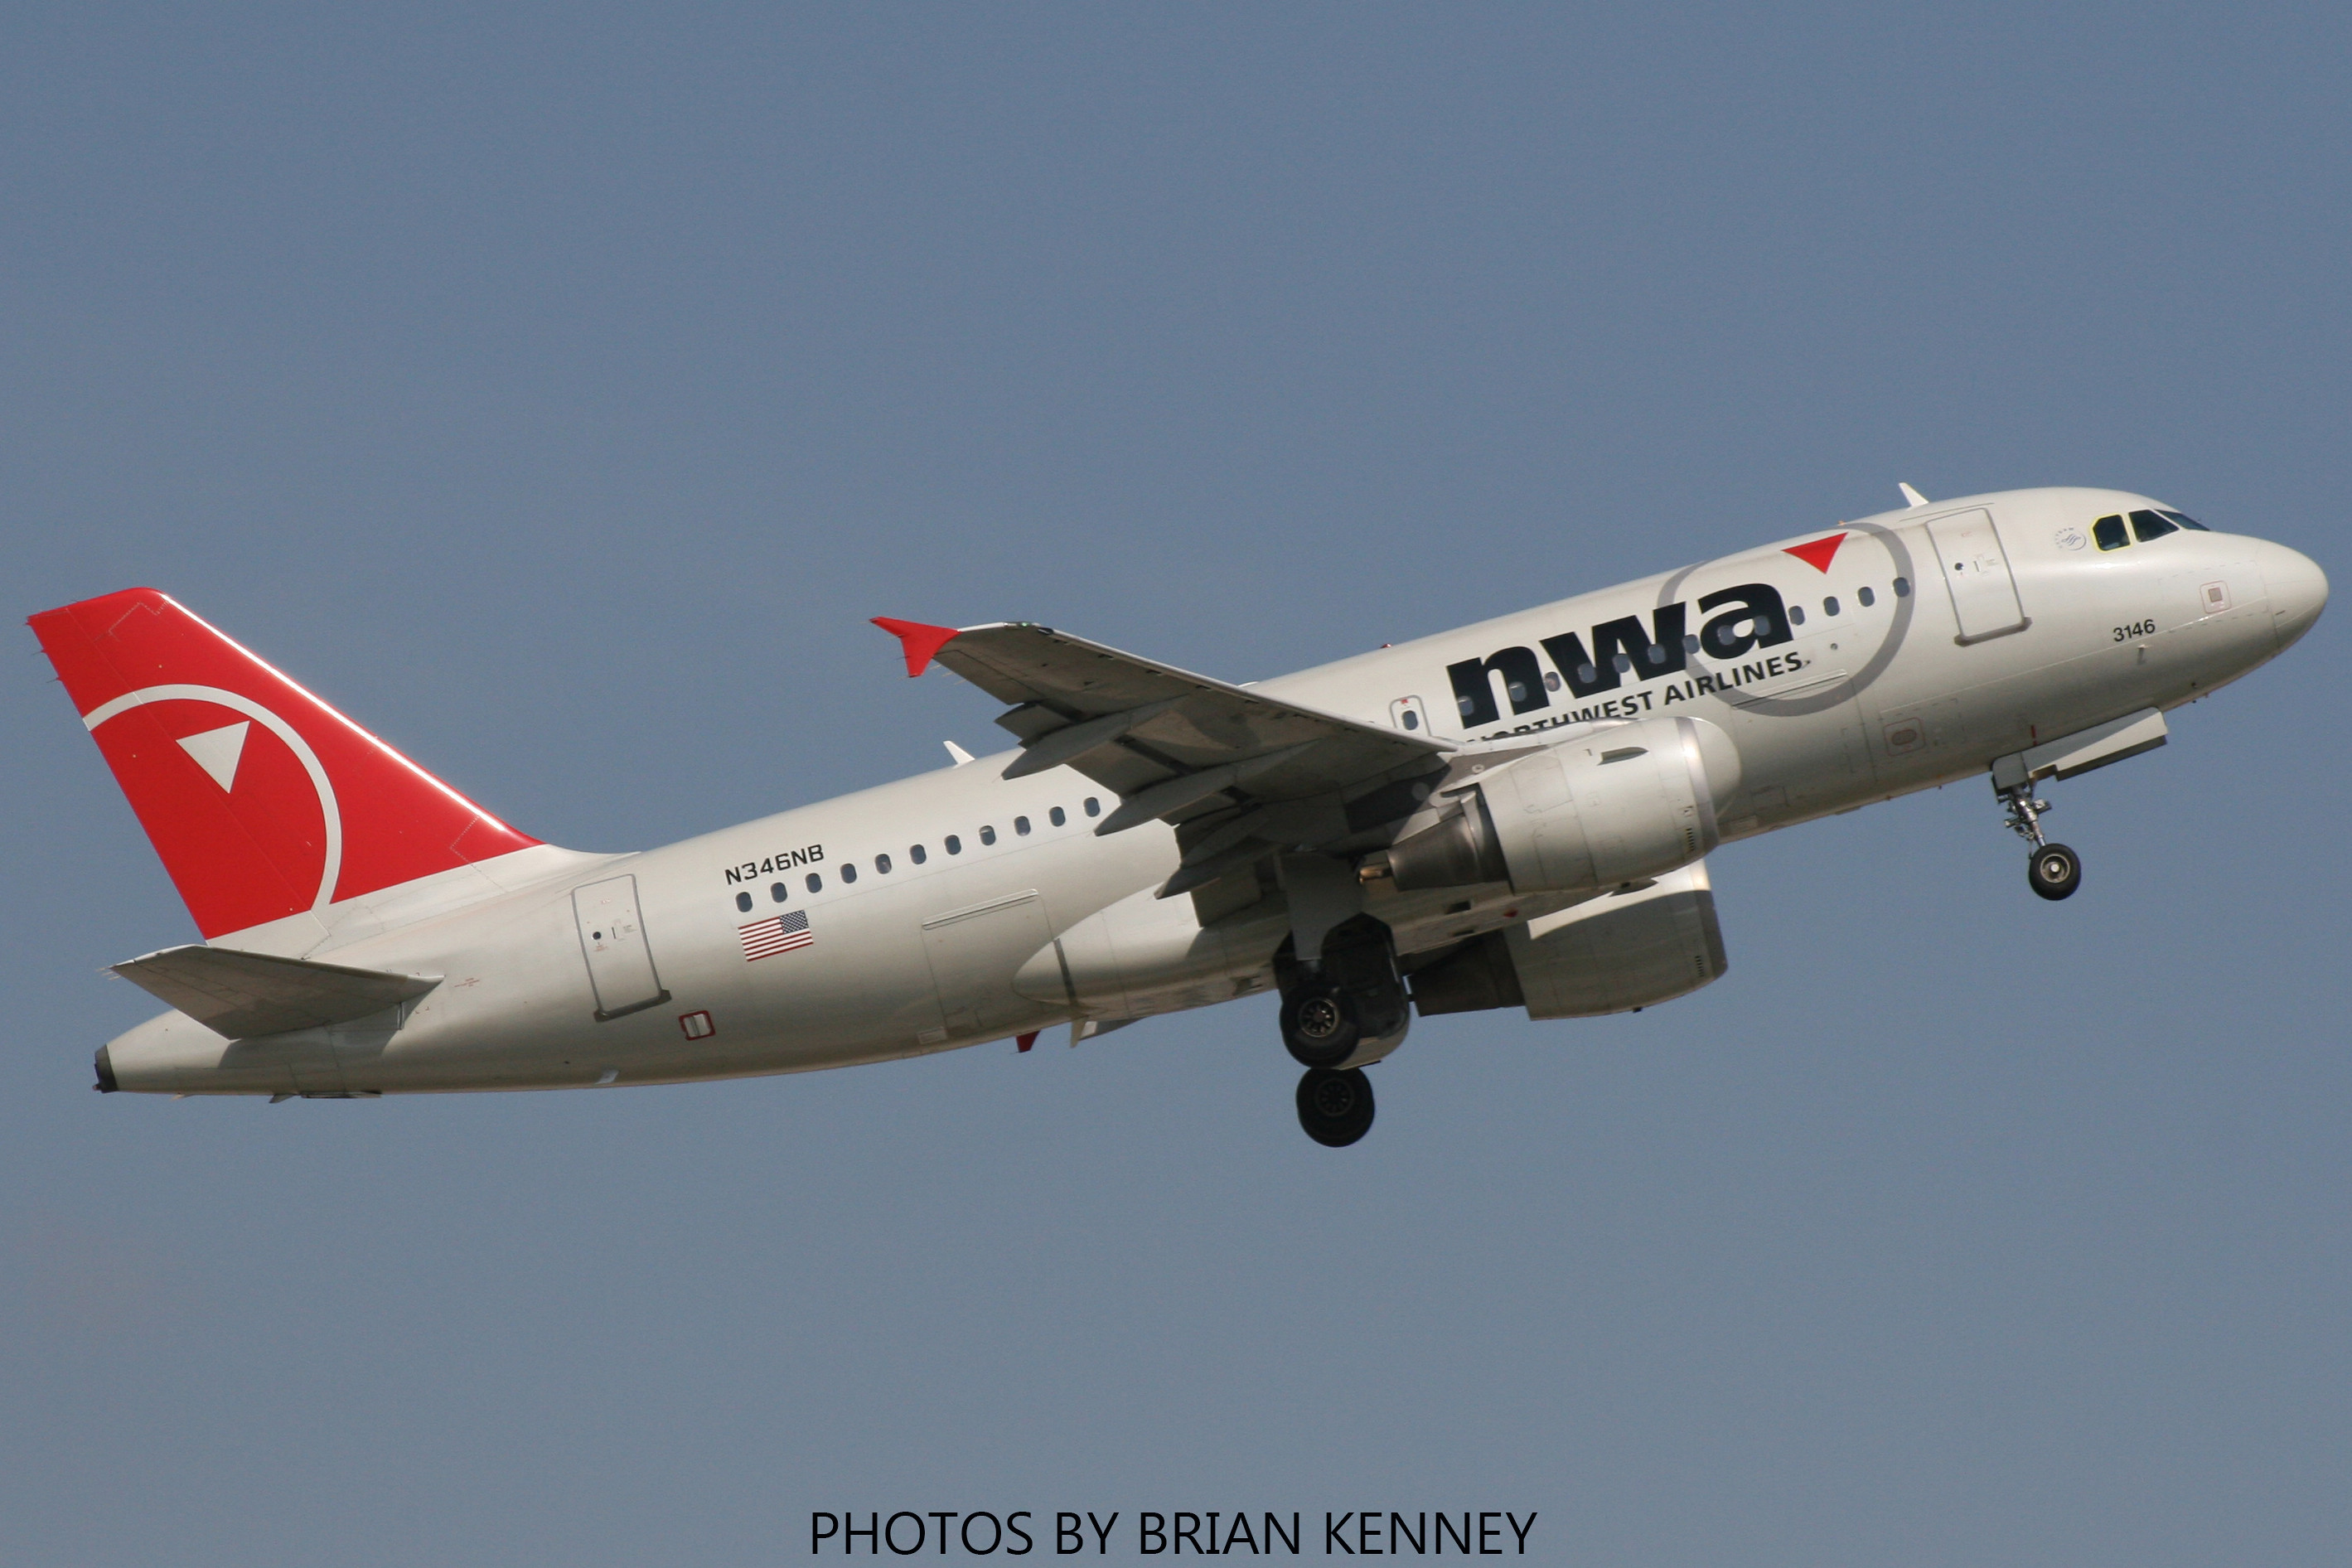 NORTHWEST AIRLINES A319-114